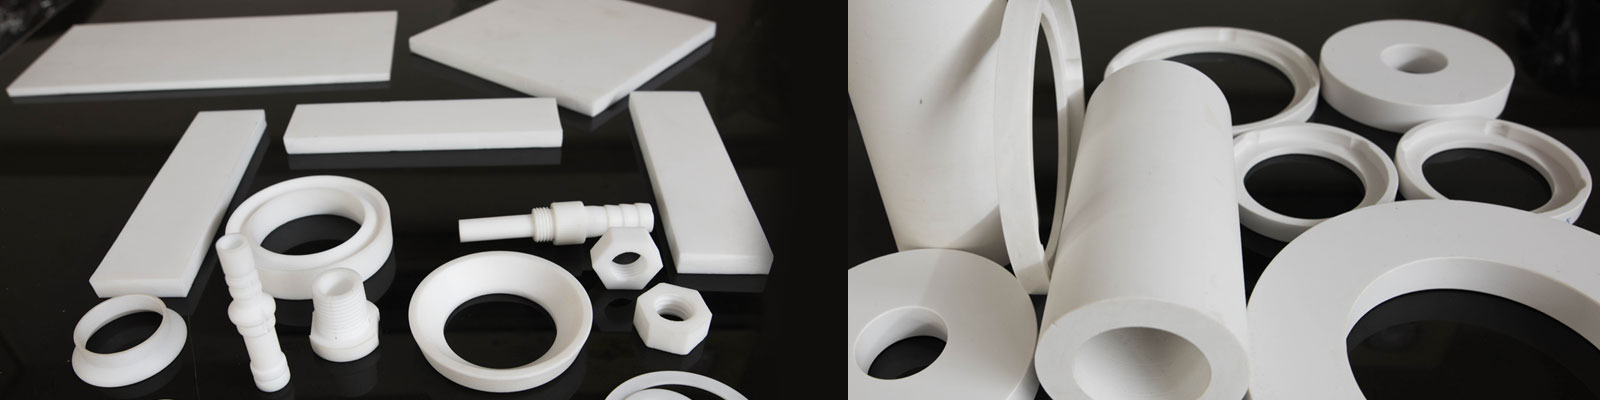 Ptfe products machine and moulded